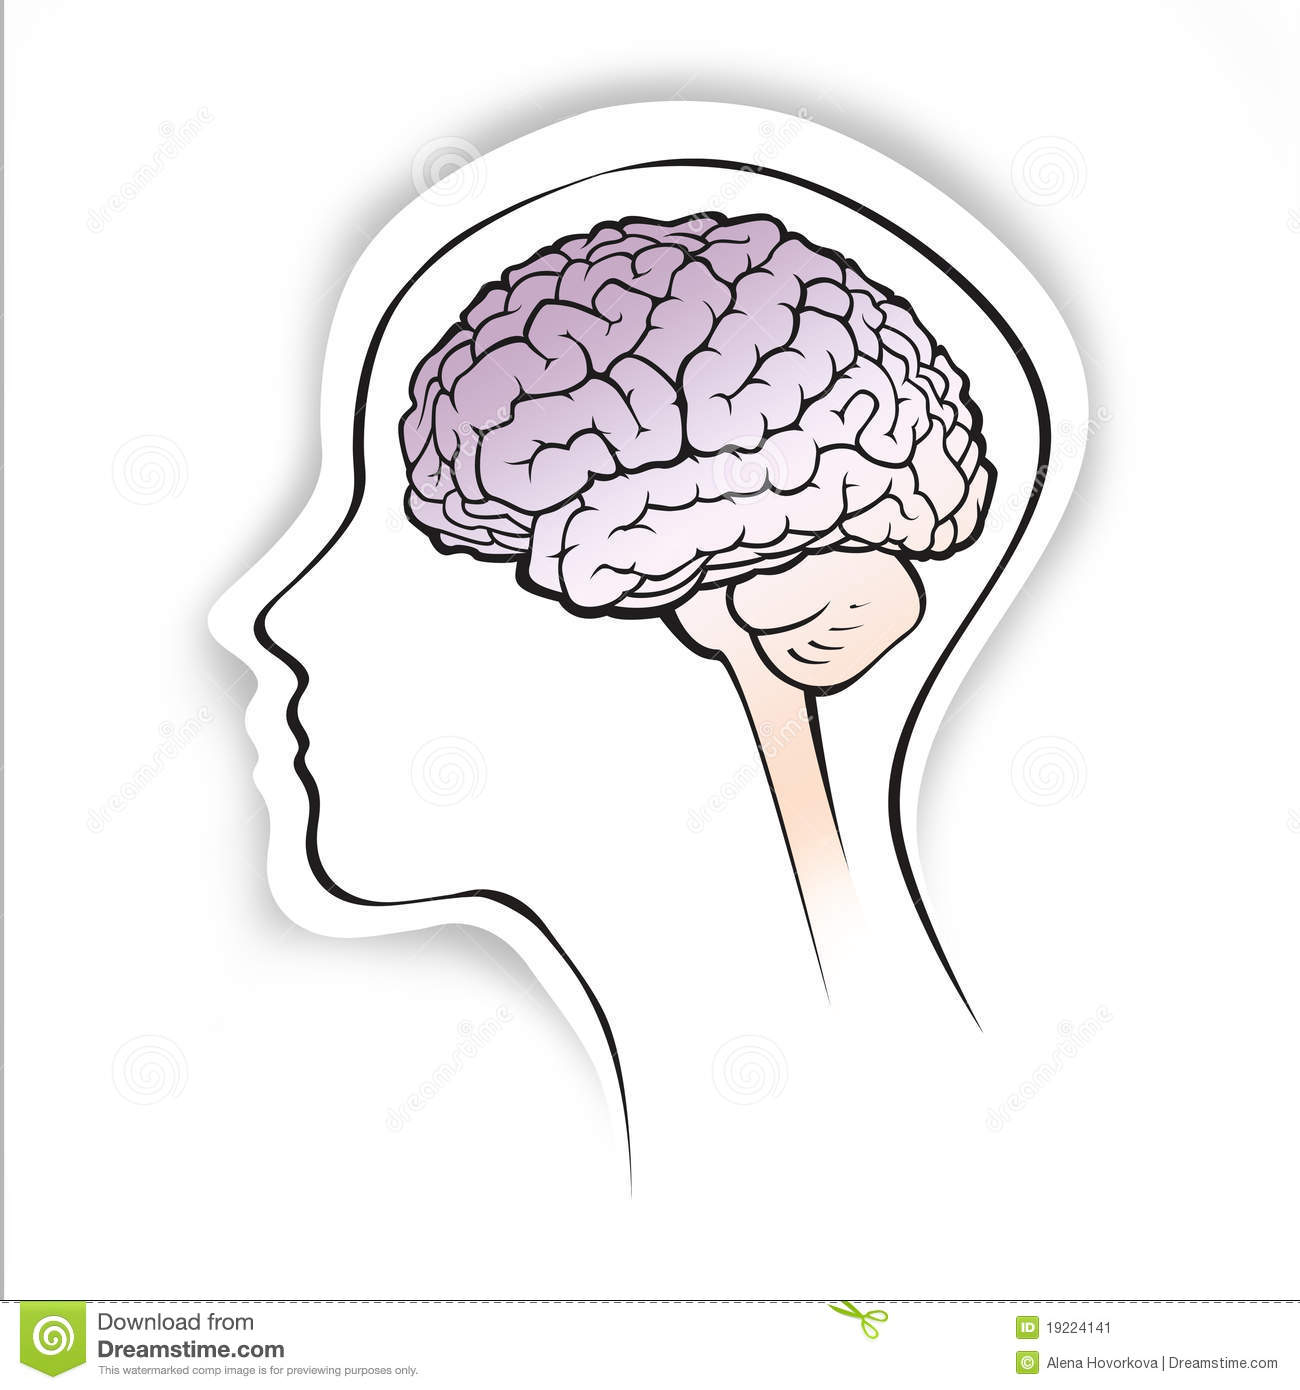 Human brain within a simple head silhouette stock illustration human brain within a simple head silhouette ccuart Images